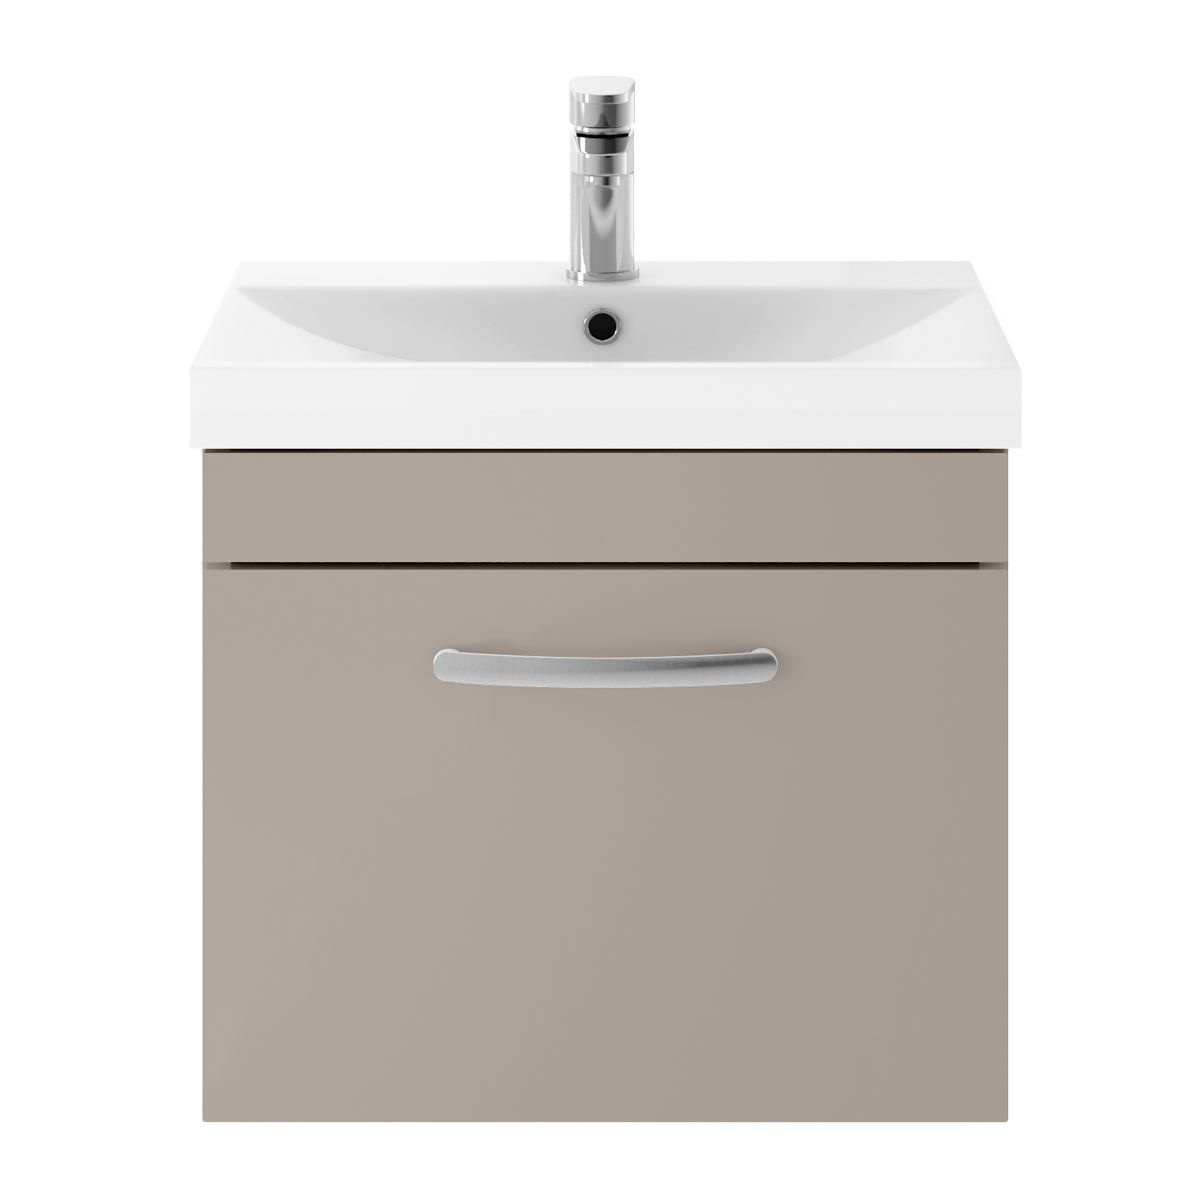 Nuie Athena Stone Grey 1 Drawer Wall Hung Vanity Unit with 50mm Profile Basin 500mm